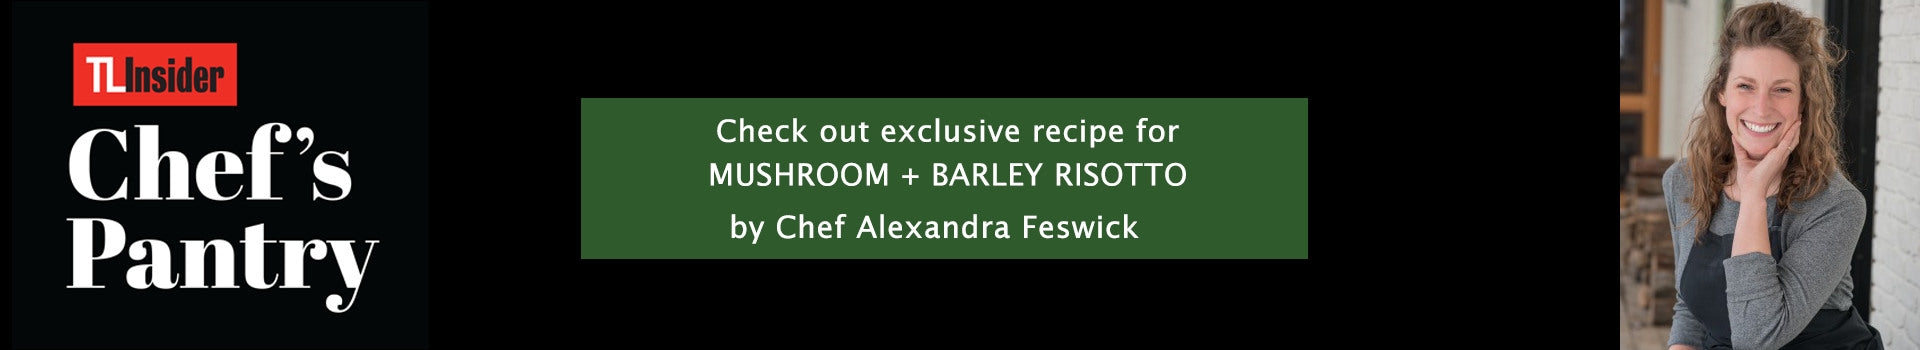 MUSHROOM + BARLEY RISOTTO Recipe by Chef Alexandra Feswick